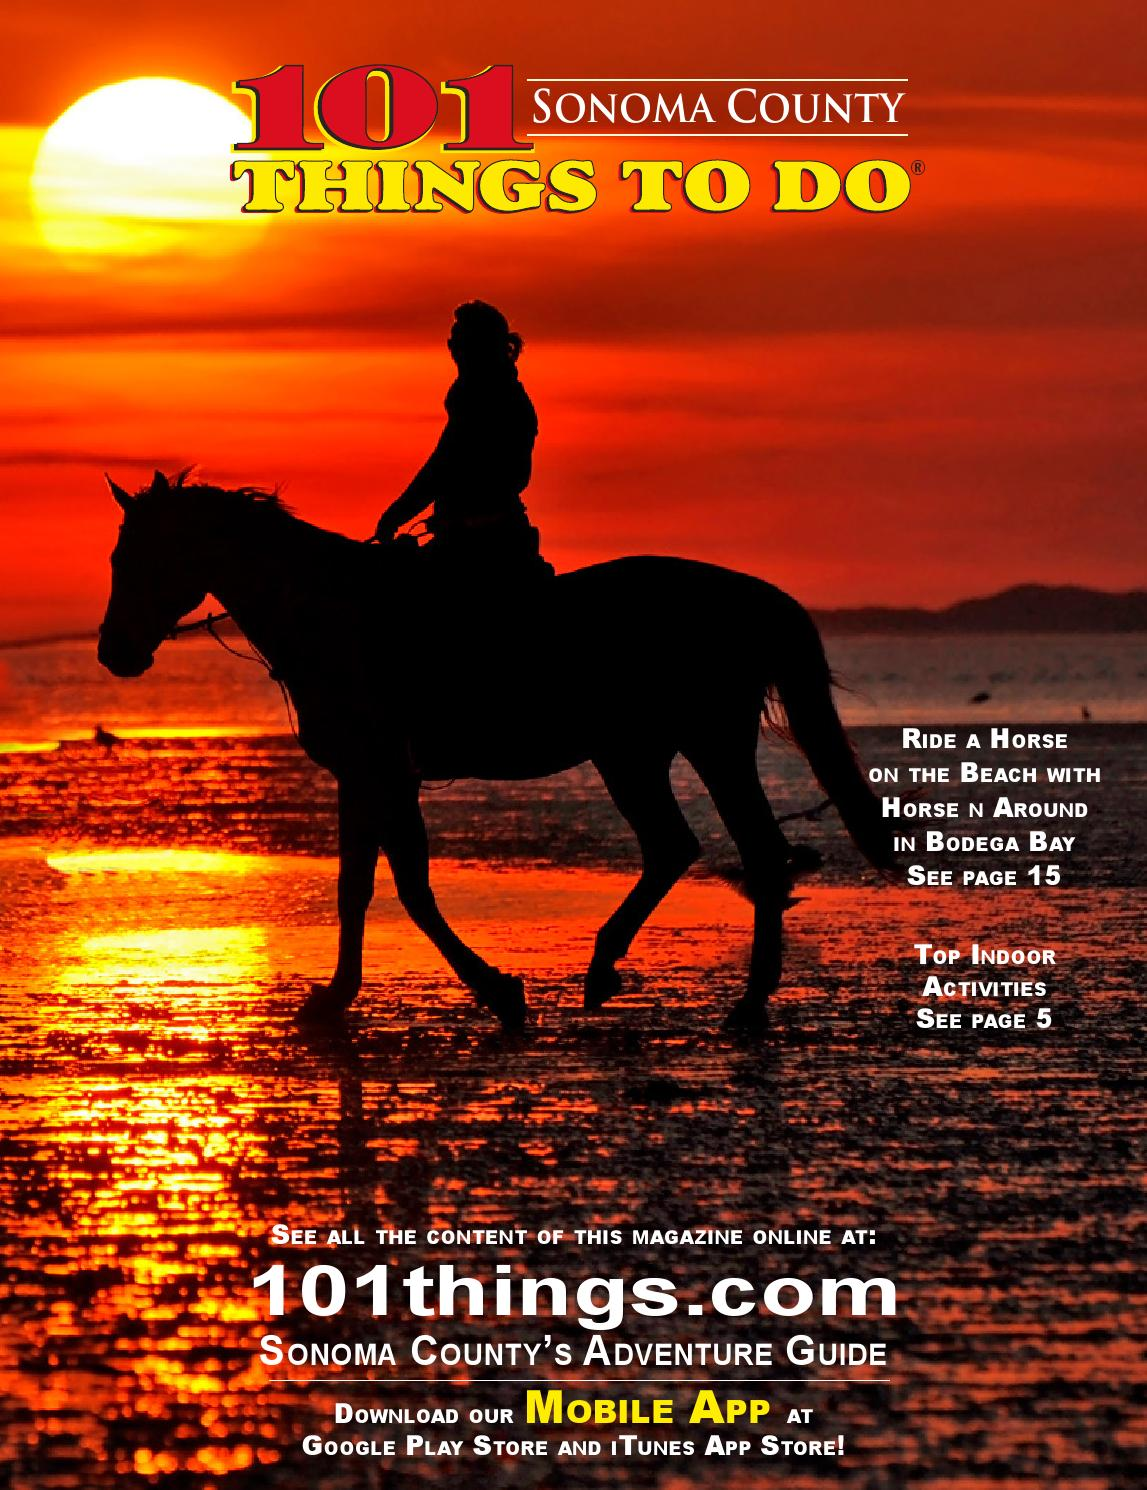 101 things to do somoma county by 101 things to do publications issuu